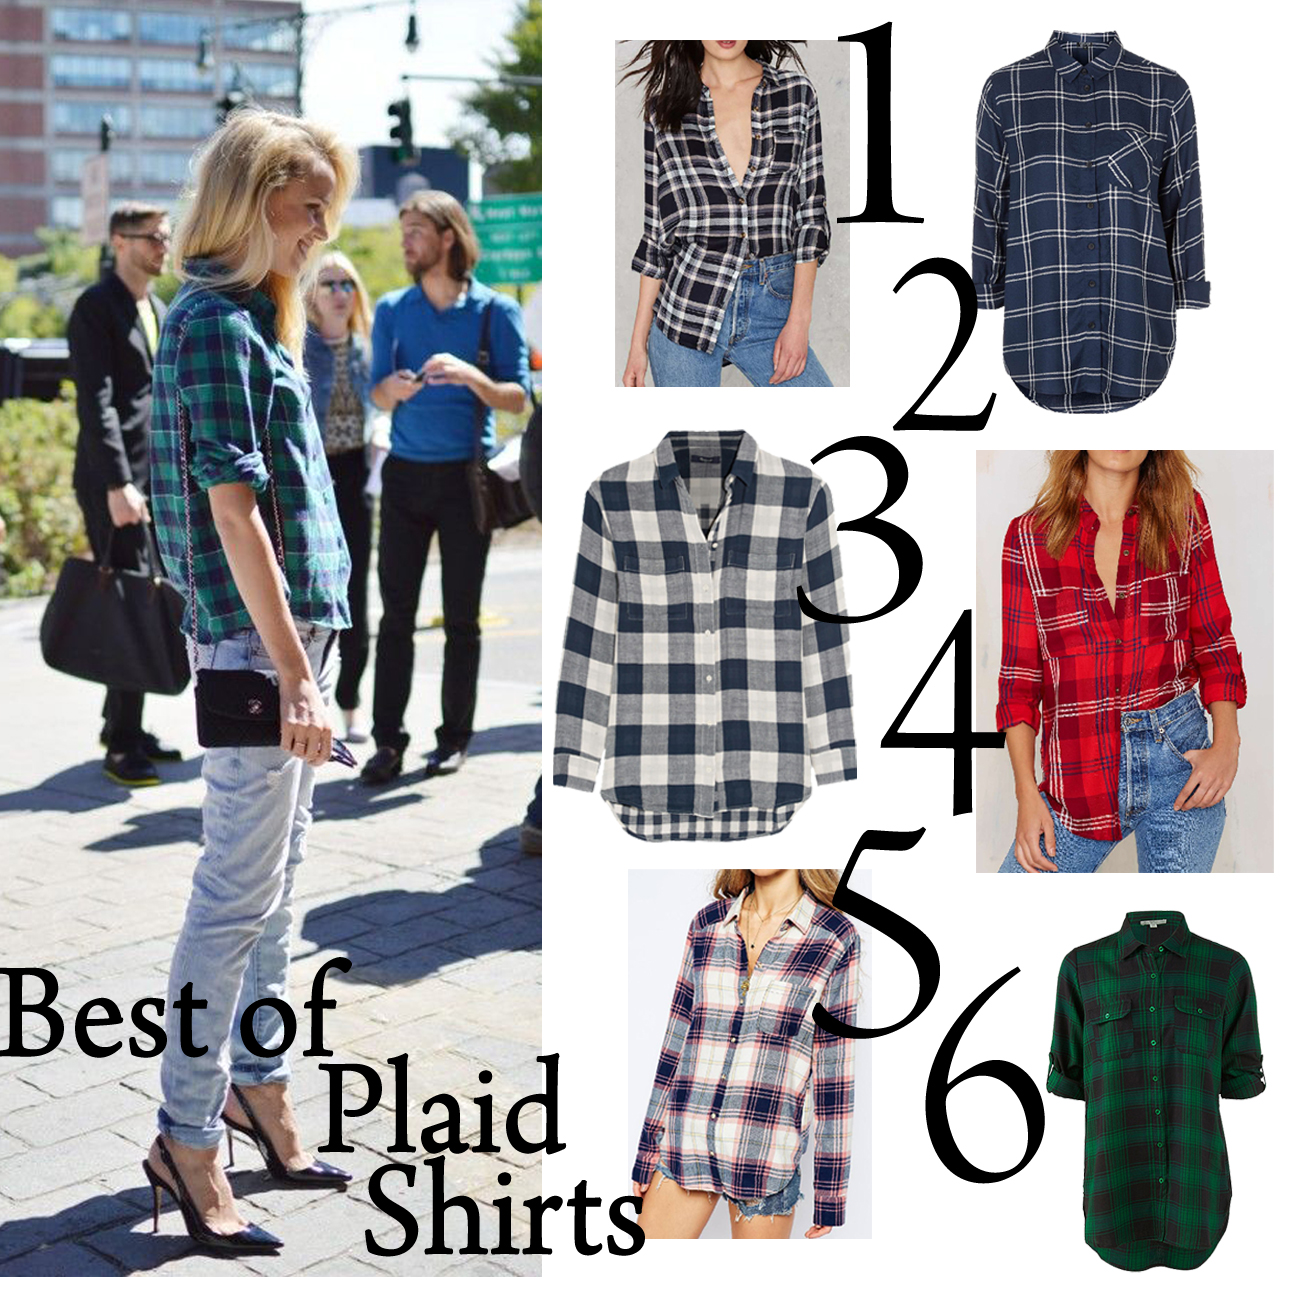 Plaid Shirts are a fun, casual look. Find Black Plaid Shirts, Red Plaid Shirts, or Kids Plaid Shirts today at Macys.